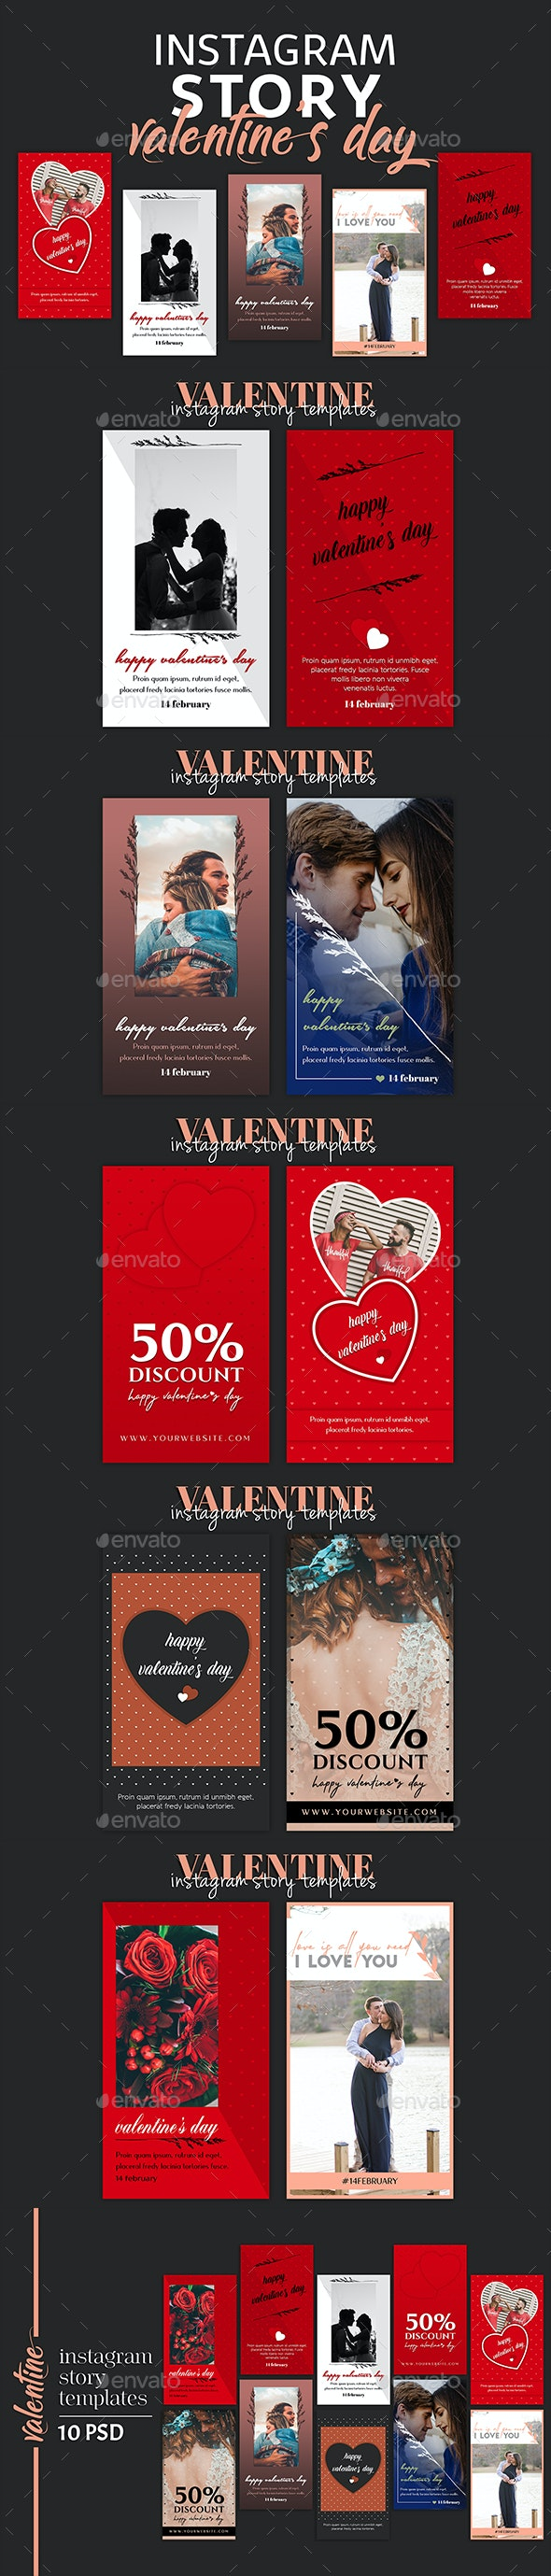 Valentines Day Instagram Story Templates - Social Media Web Elements